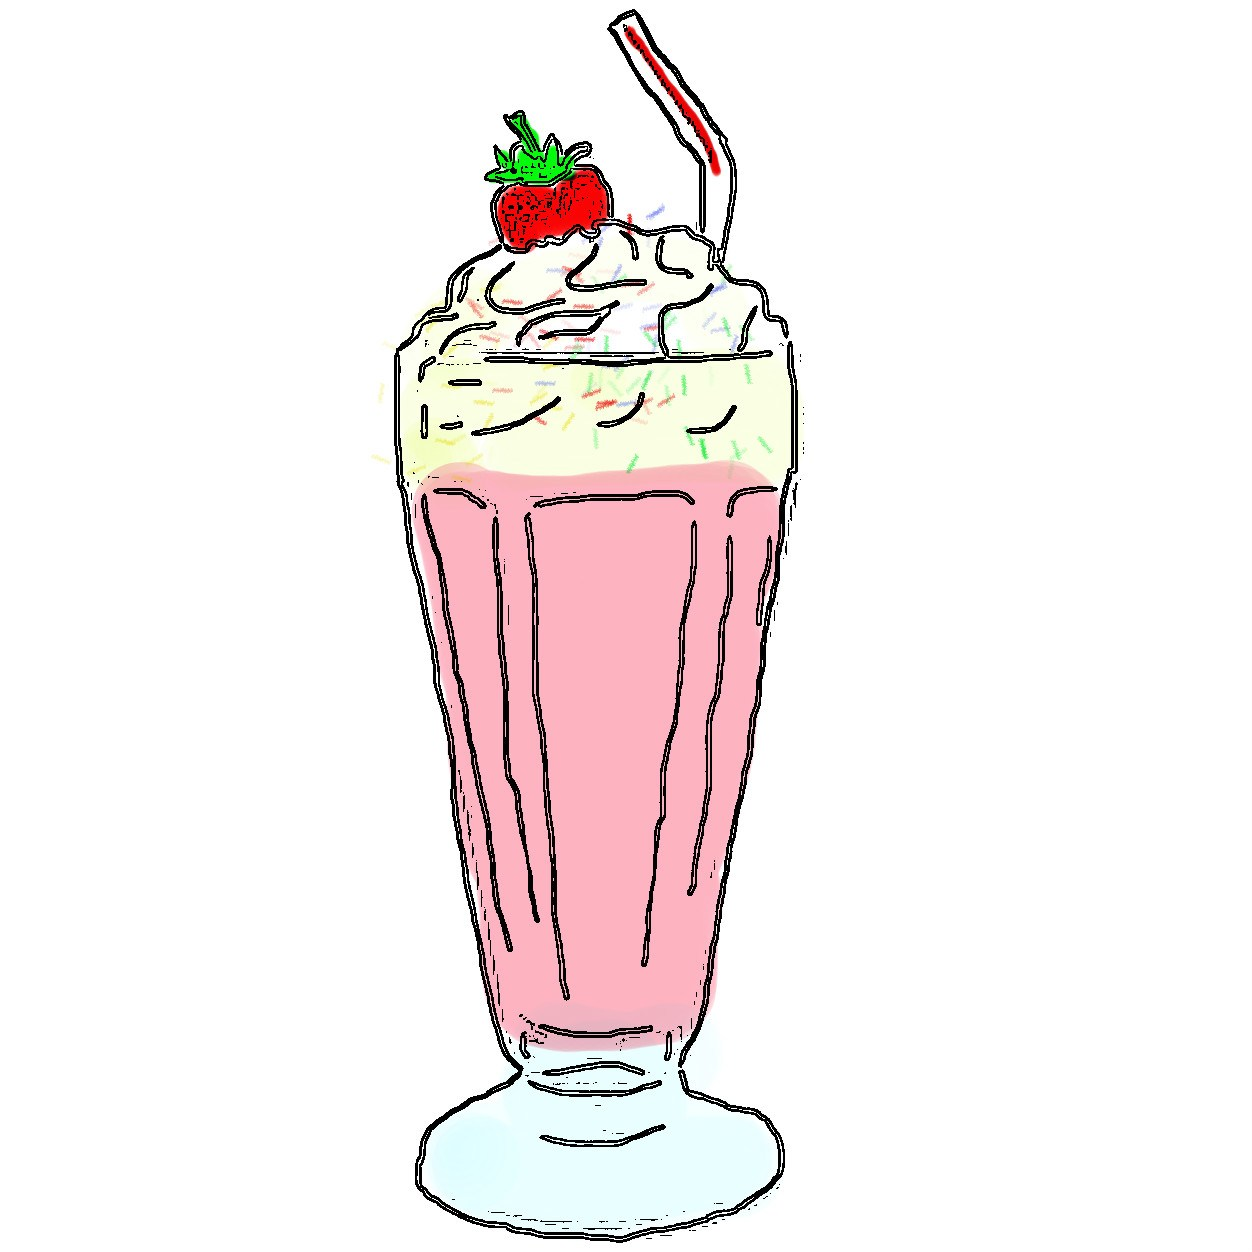 Milkshake images clipart clipart black and white library Milkshake clipart 4 » Clipart Portal clipart black and white library